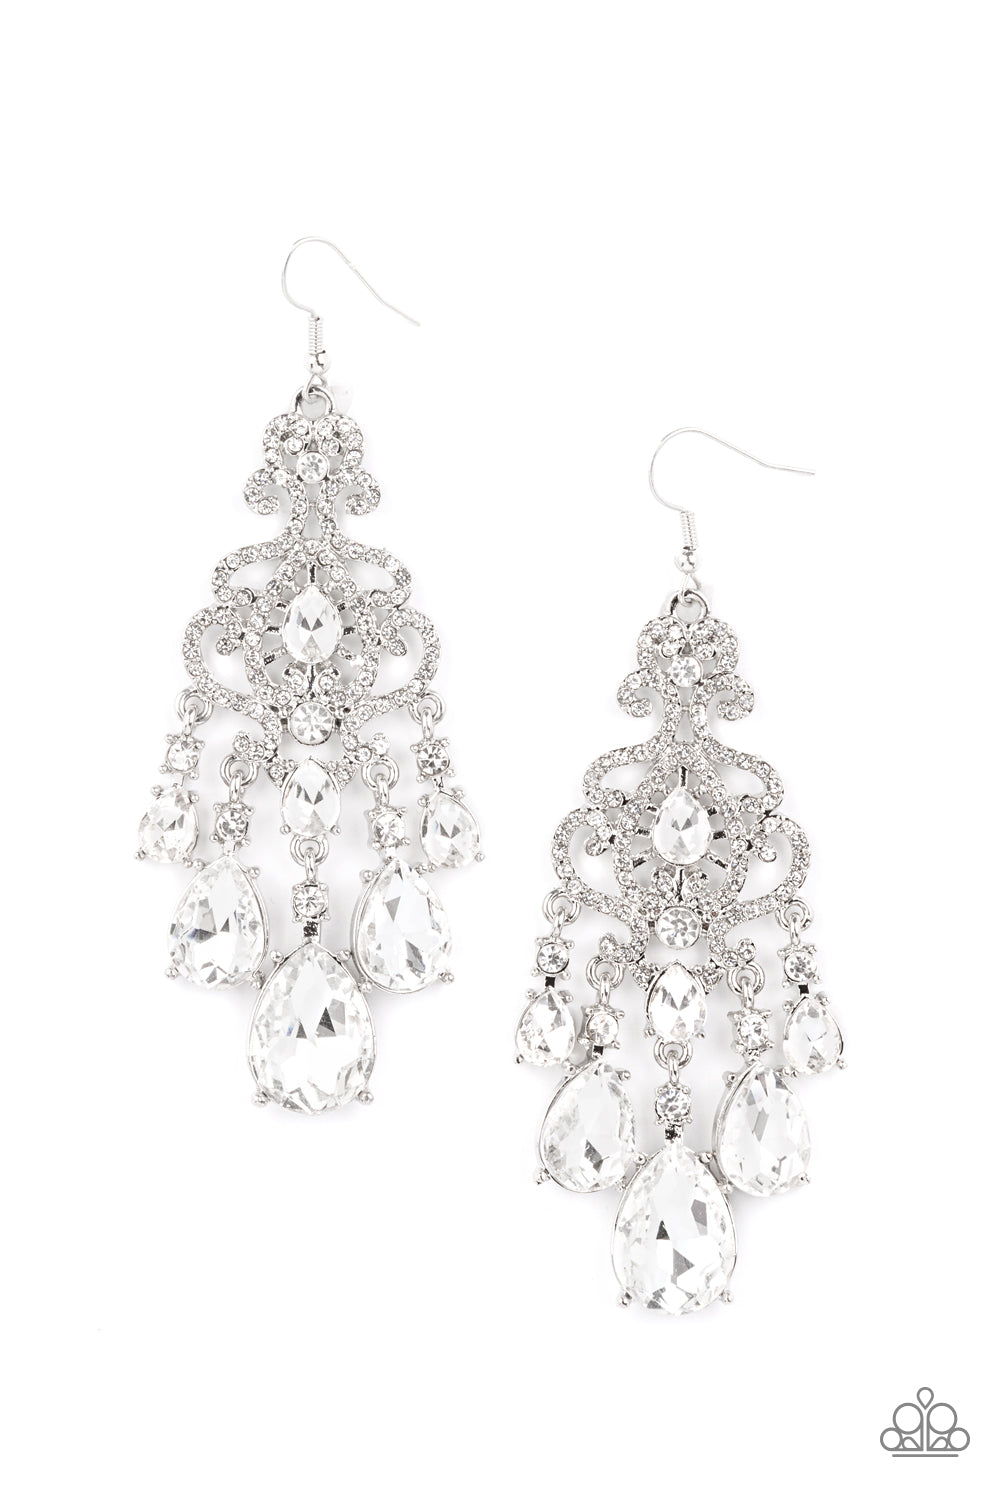 five-dollar-jewelry-queen-of-all-things-sparkly-white-earrings-paparazzi-accessories